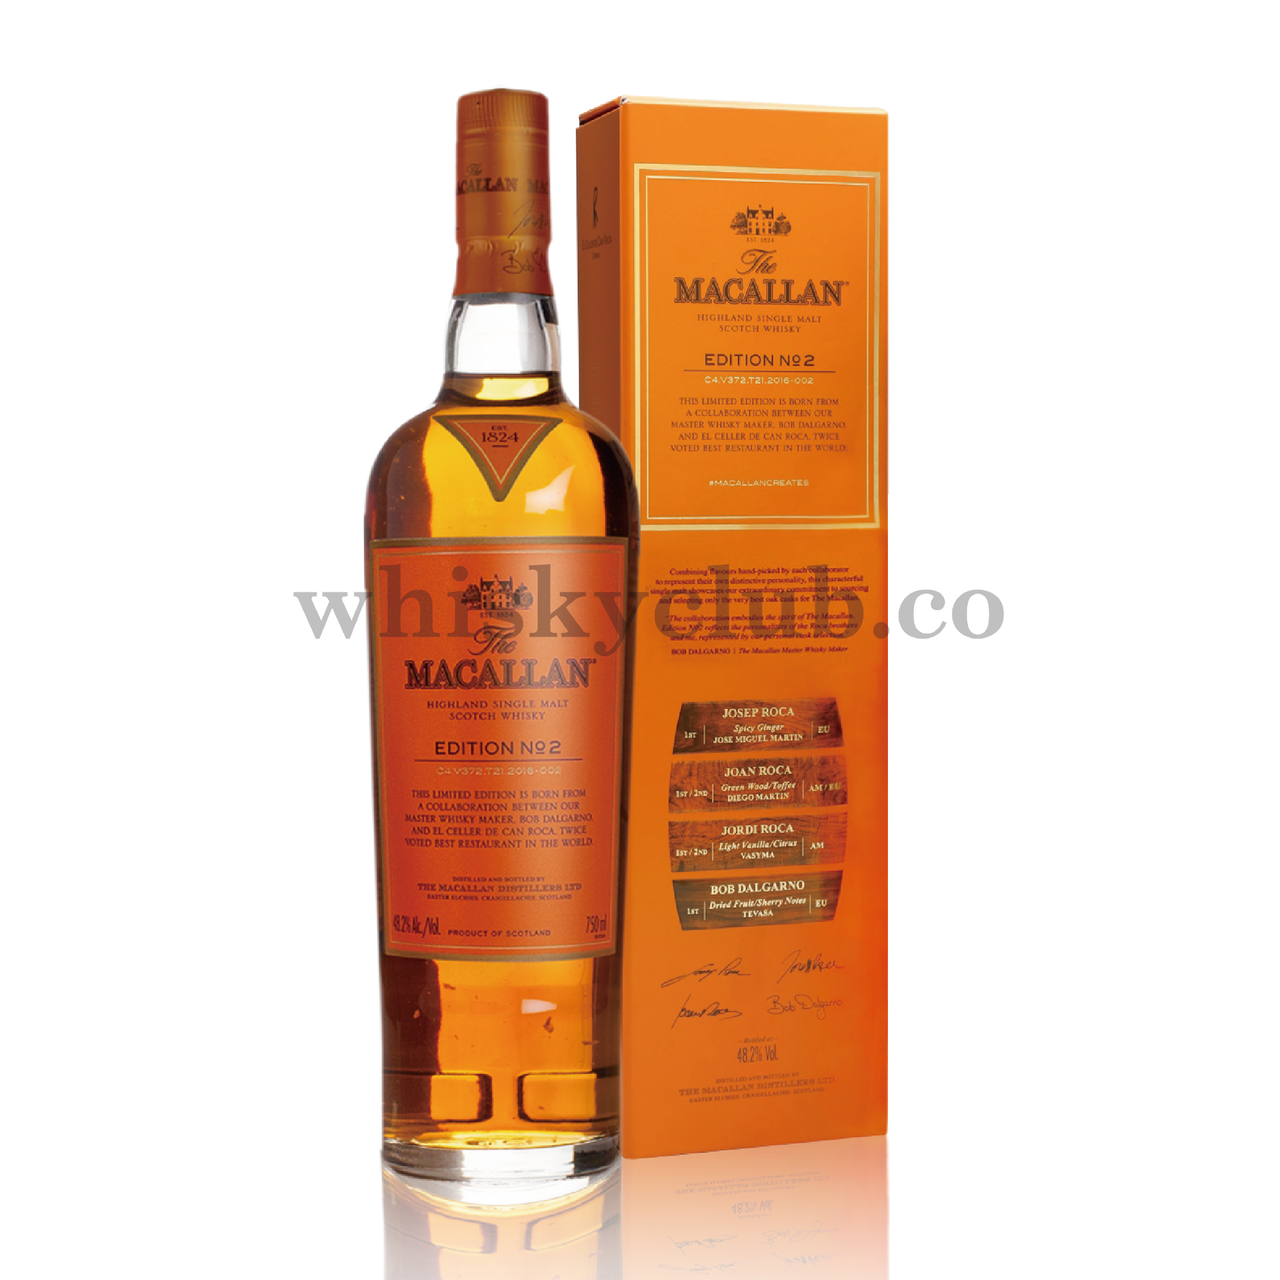 Macallan edition no.2 %e5%95%86%e5%93%81%e7%85%a7 01